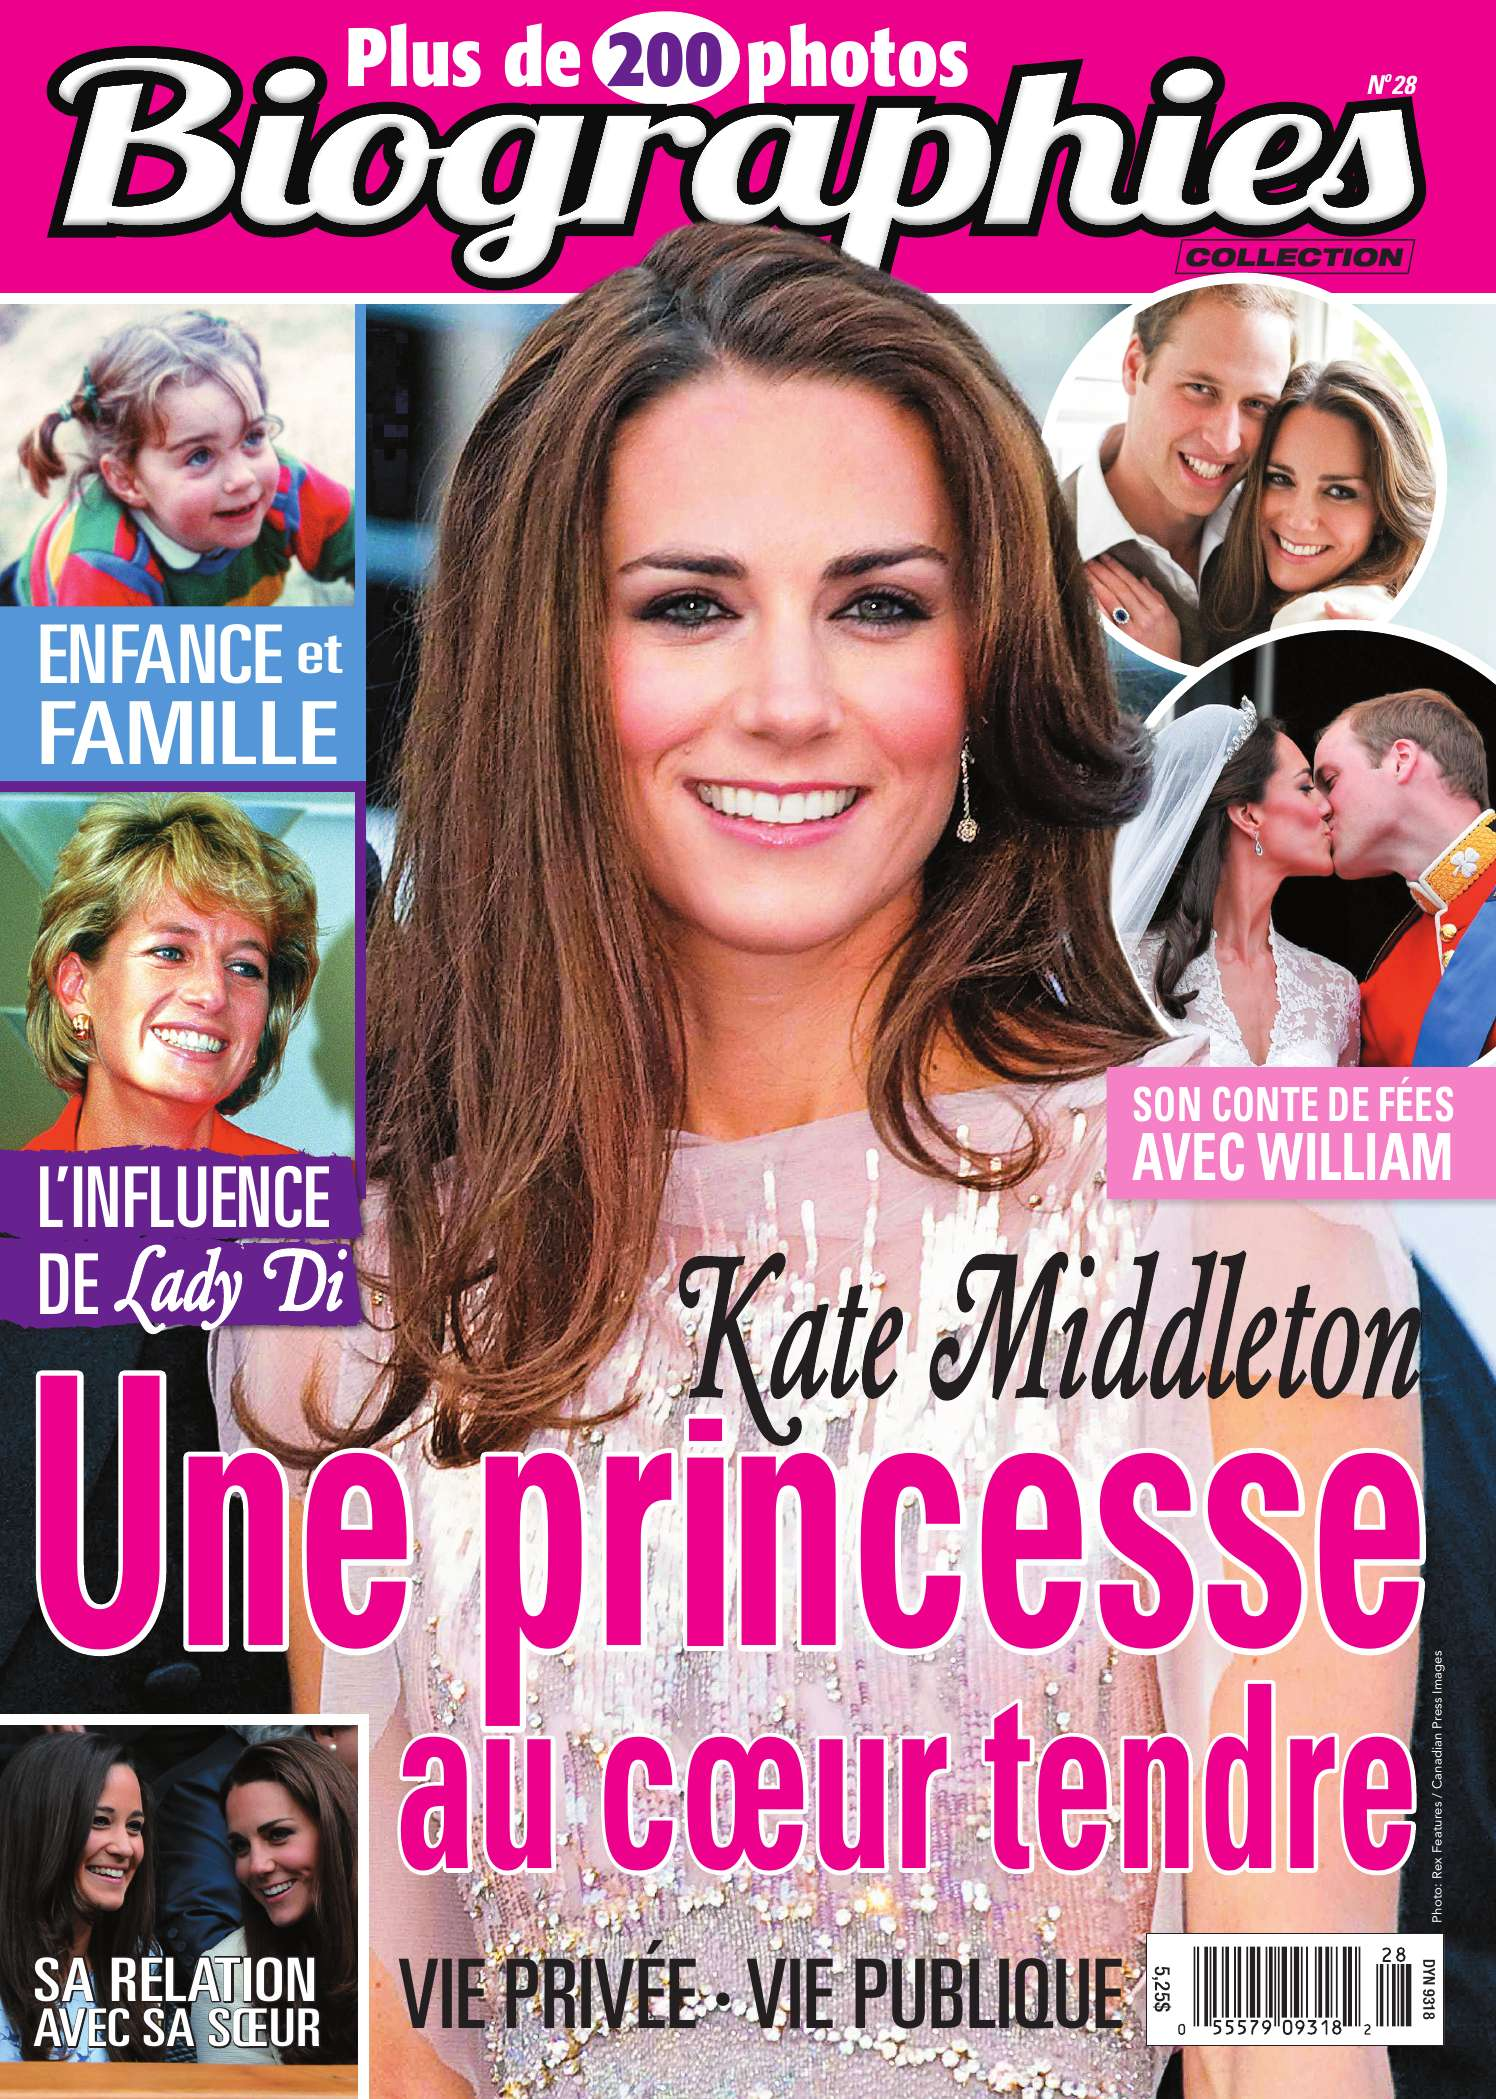 Couverture BIOGRAPHIES 0028 magenligne.com Kate Middleton